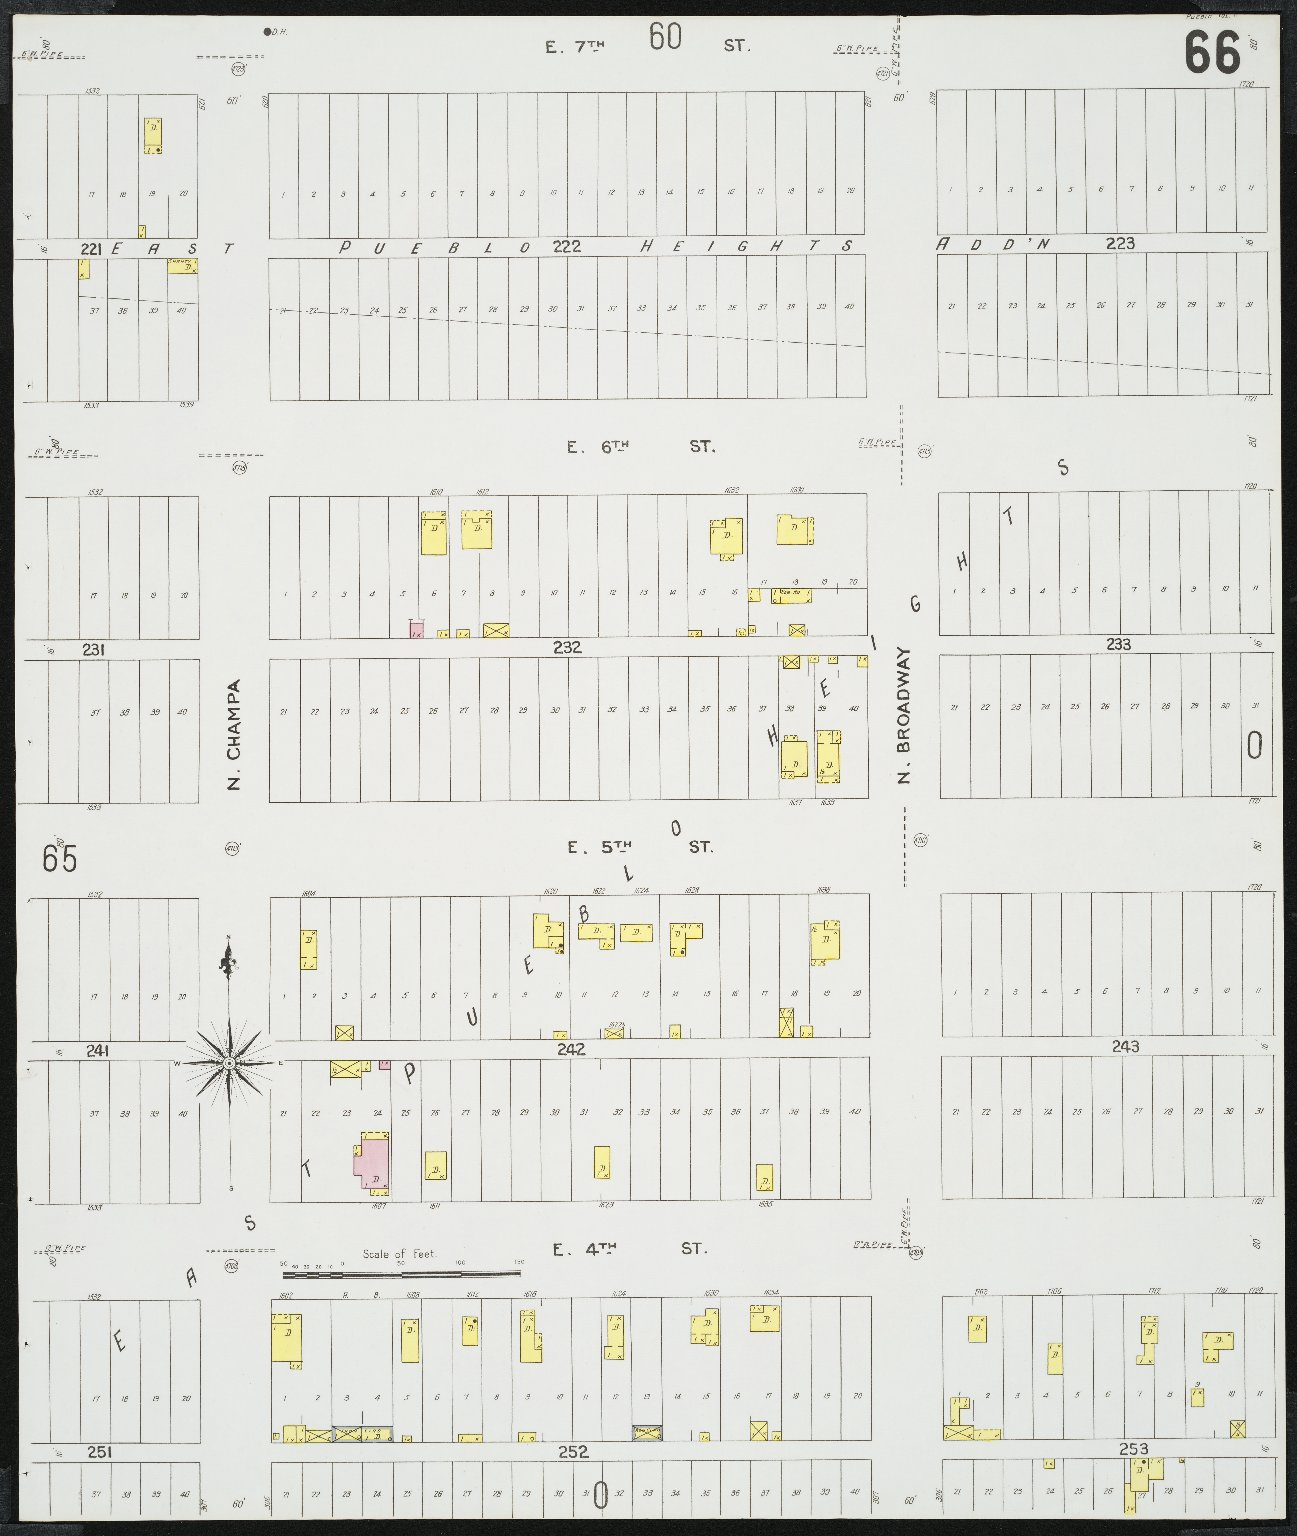 Insurance maps of Pueblo, Colorado. Volume one